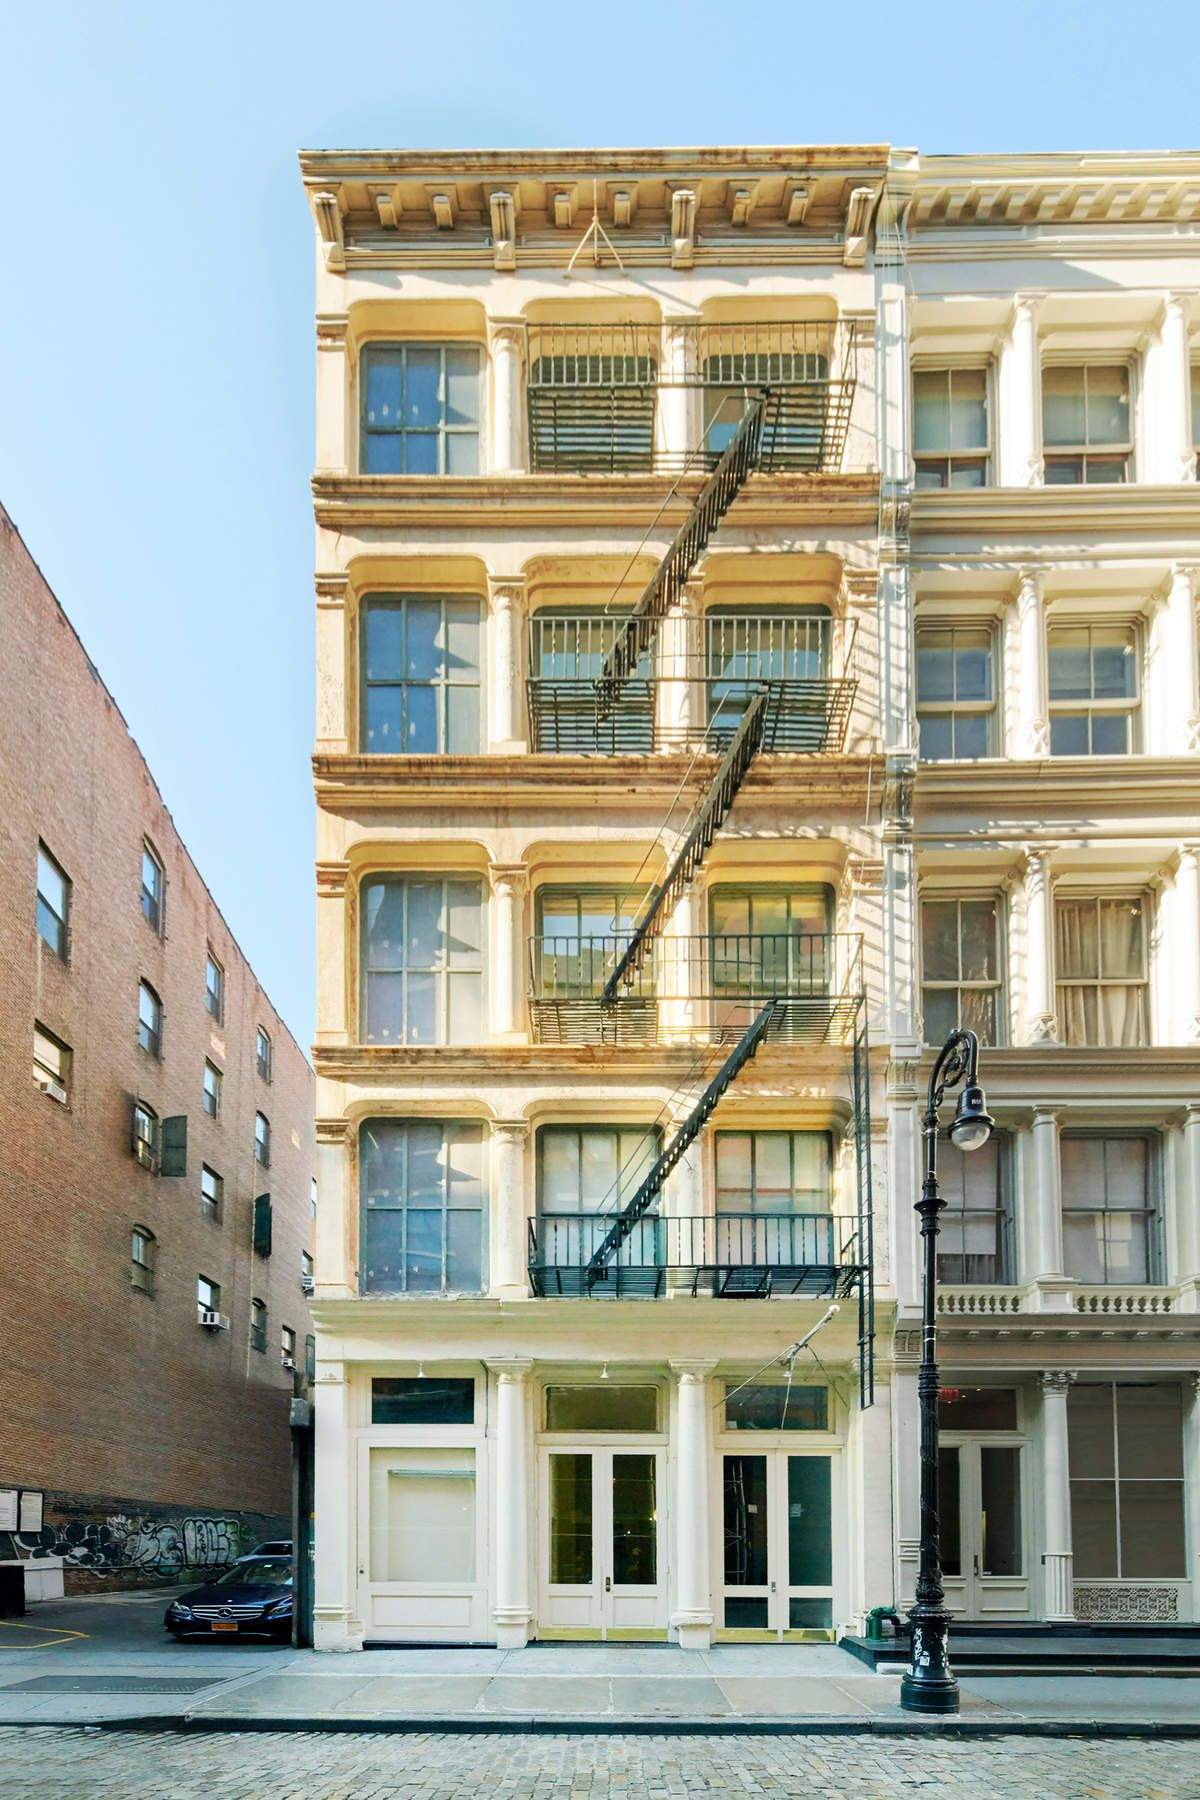 Condominium for Sale at Cast Iron Classic in SOHO 83 Mercer Street Commercial Unit New York, New York 10012 United States